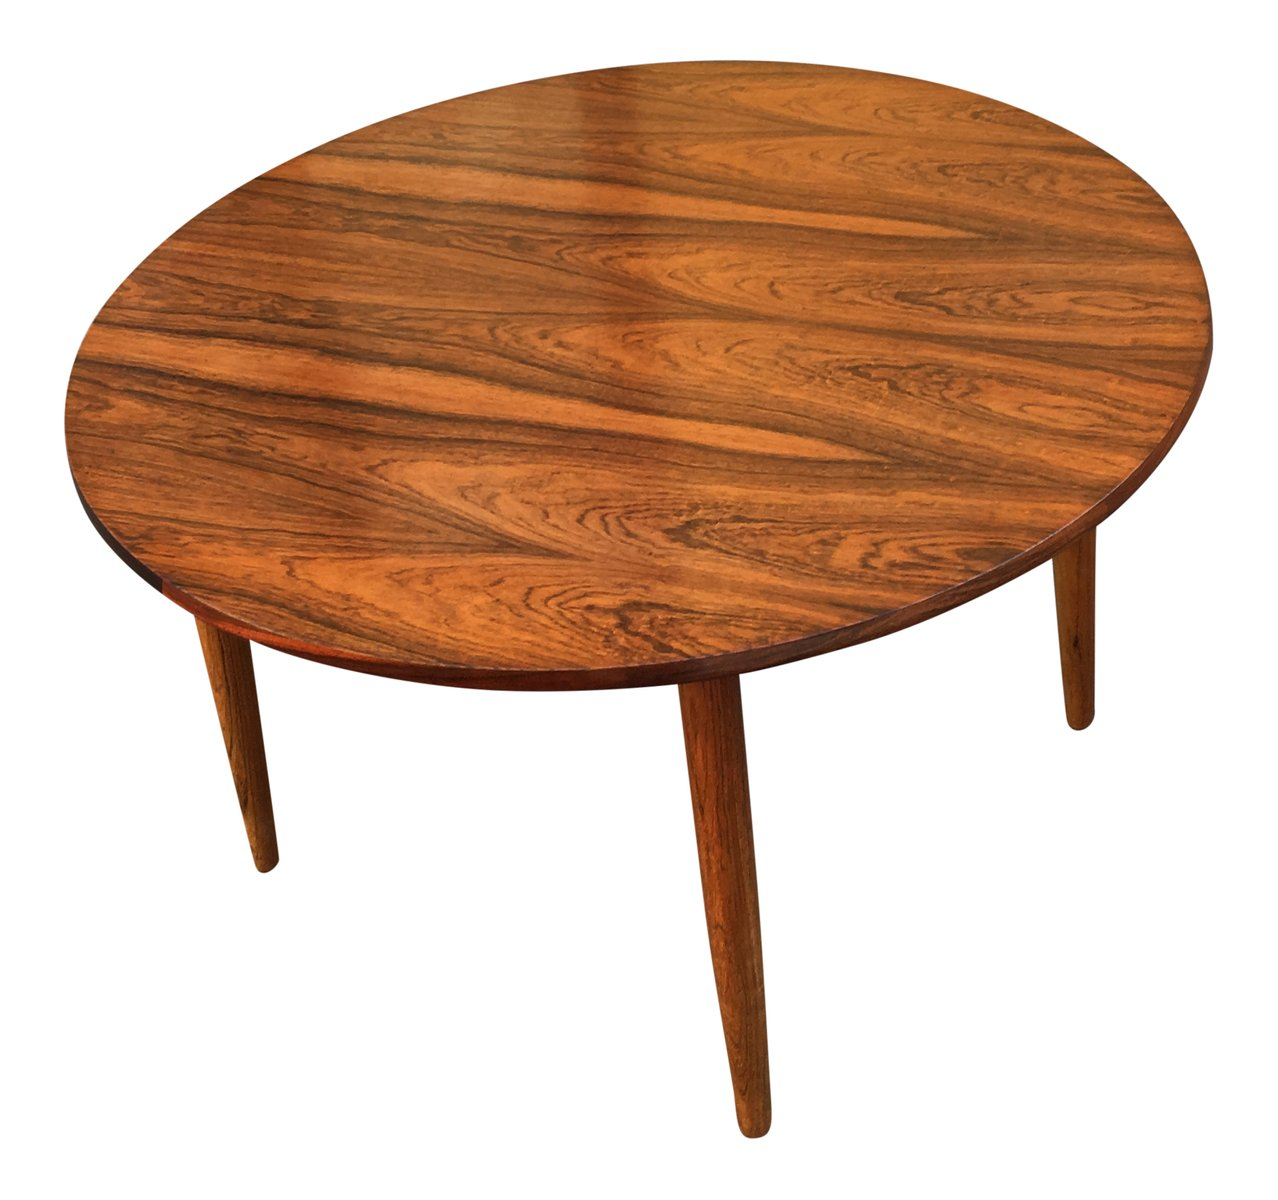 Cb2 Mid Century Coffee Table: Mid-Century Round Rosewood Coffee Table For Sale At Pamono